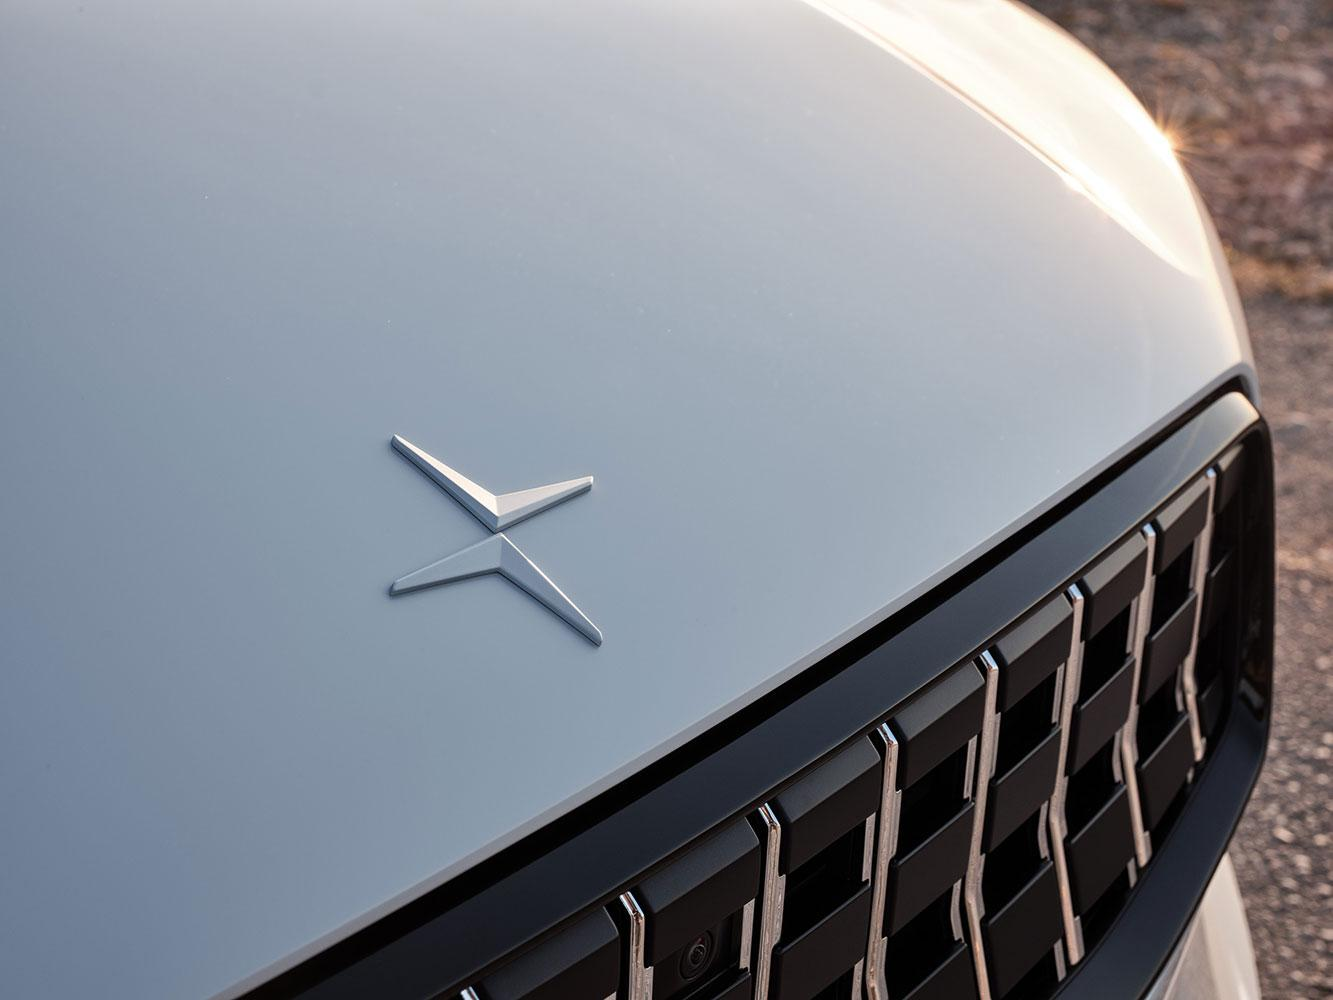 Polestar 1 bonnet and grille